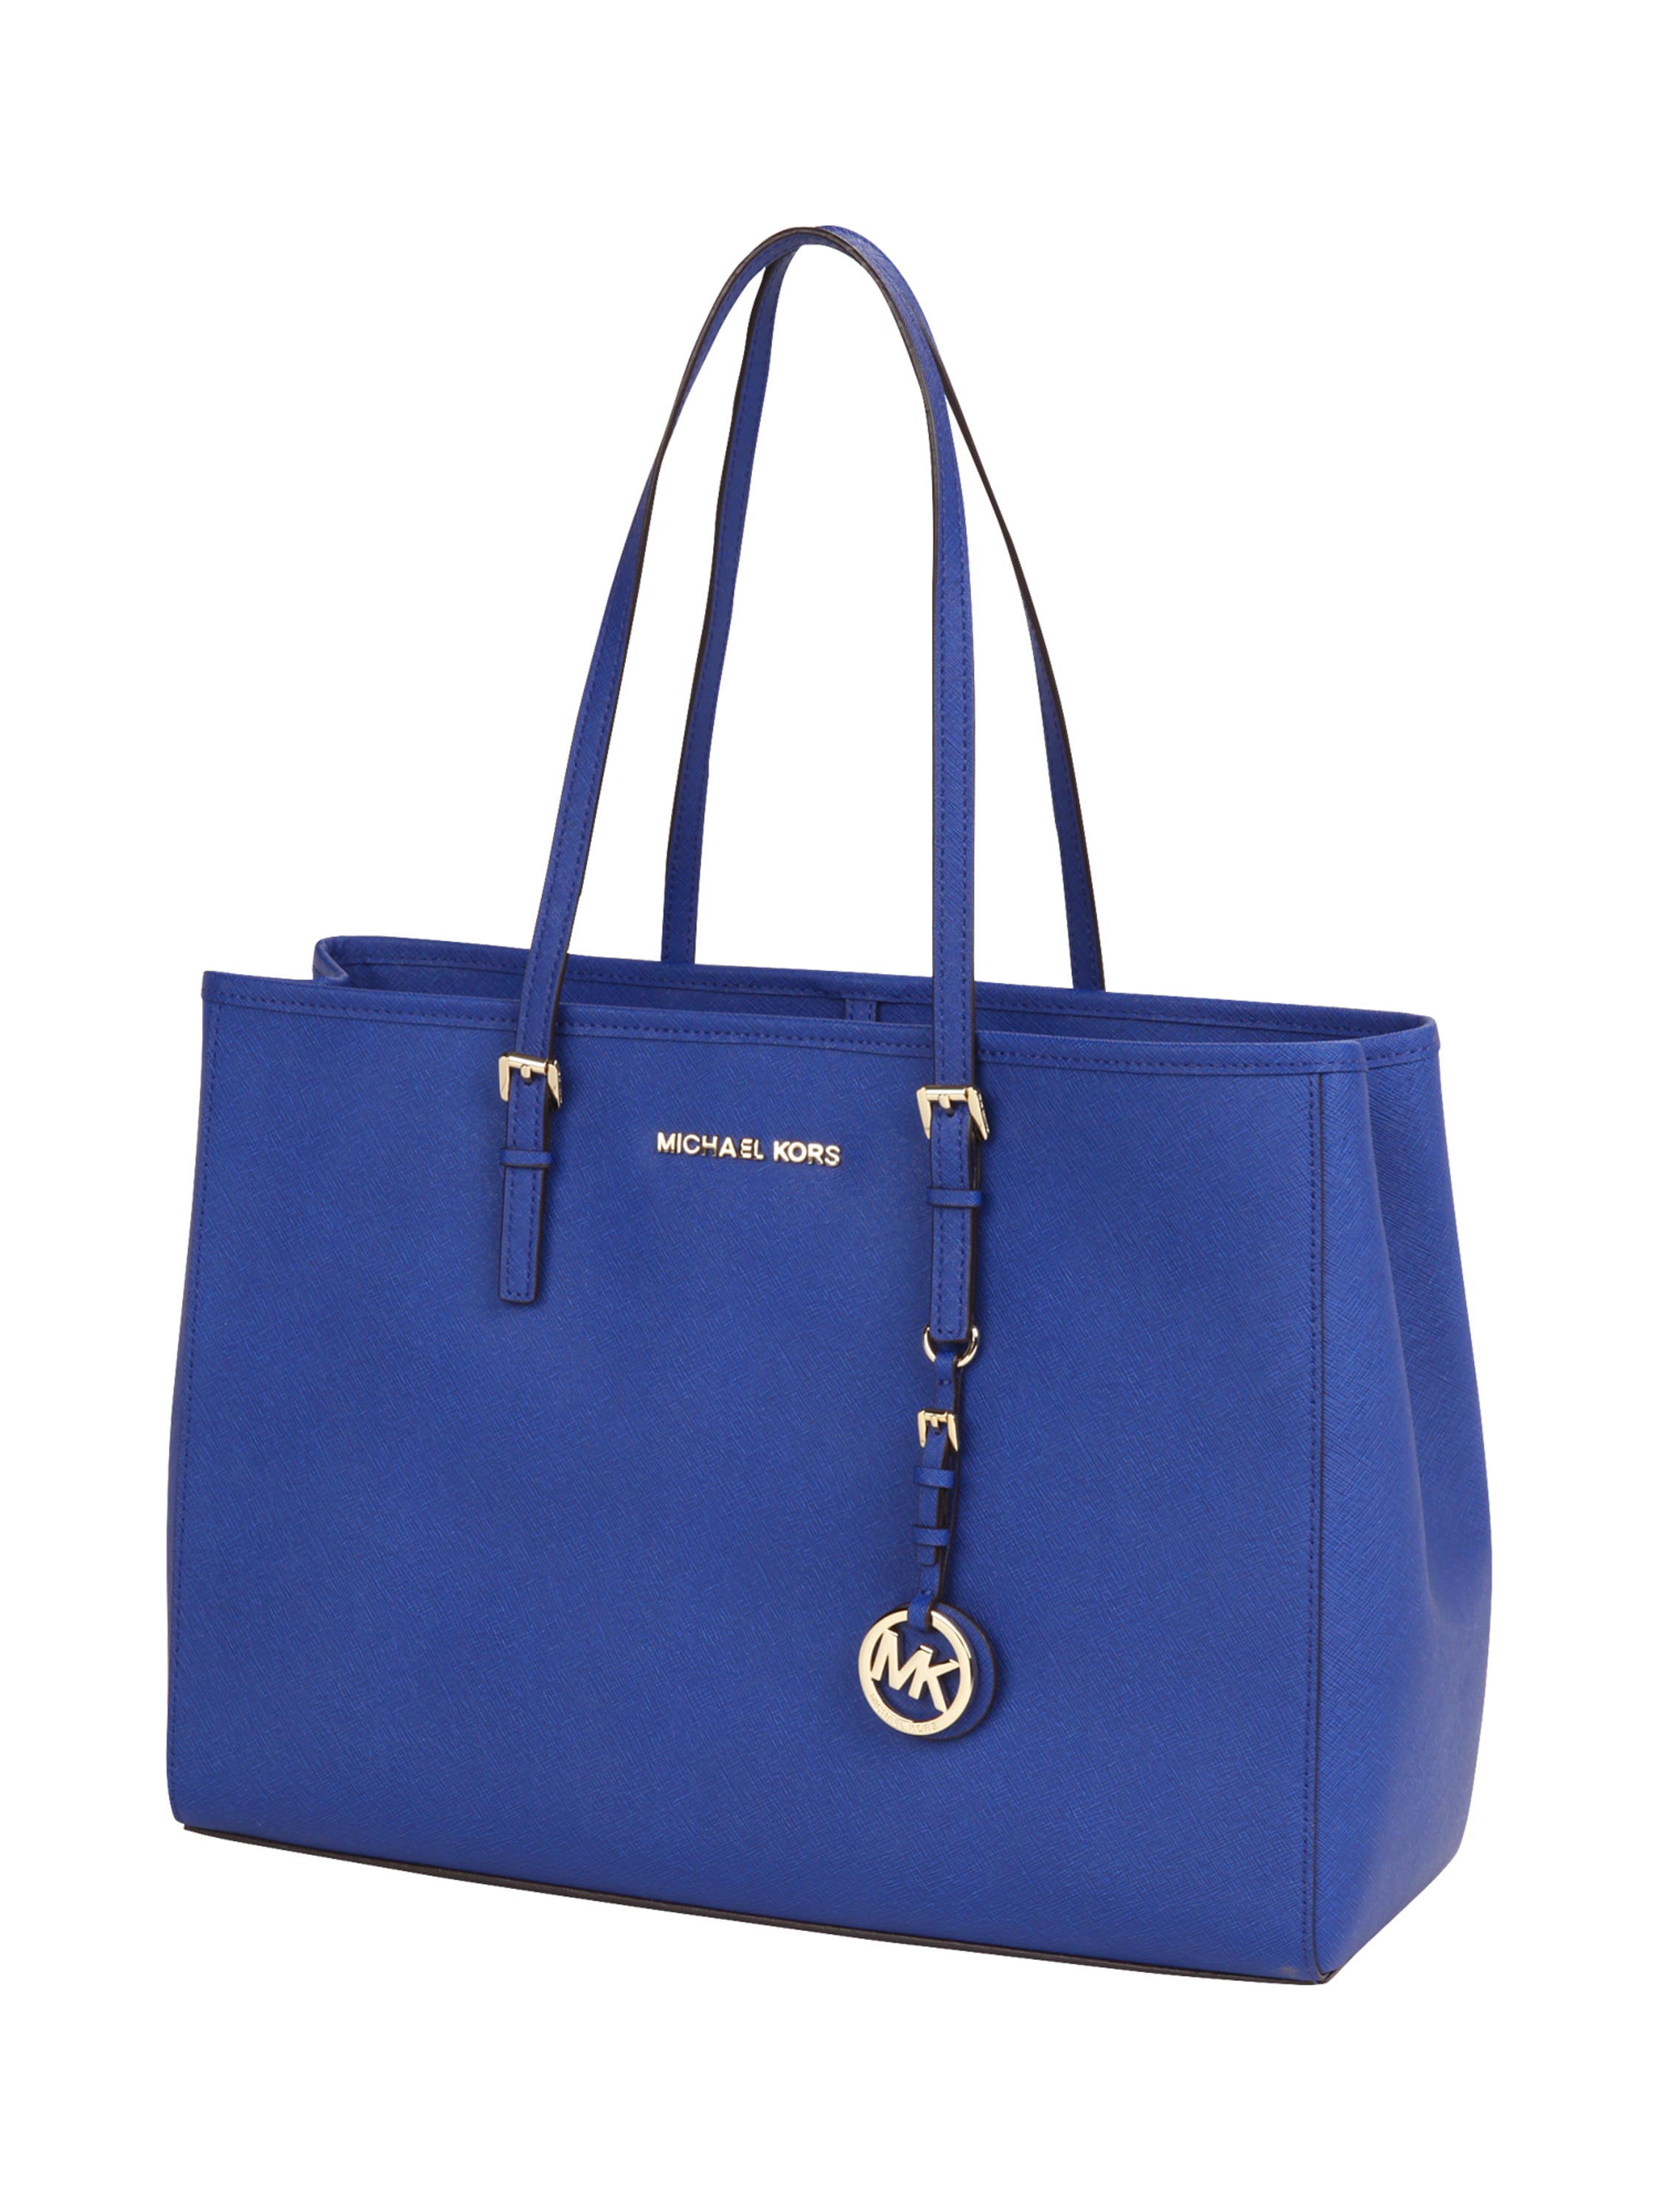 michael kors handtasche aus leder in blau t rkis online kaufen 8973992 p c online shop. Black Bedroom Furniture Sets. Home Design Ideas